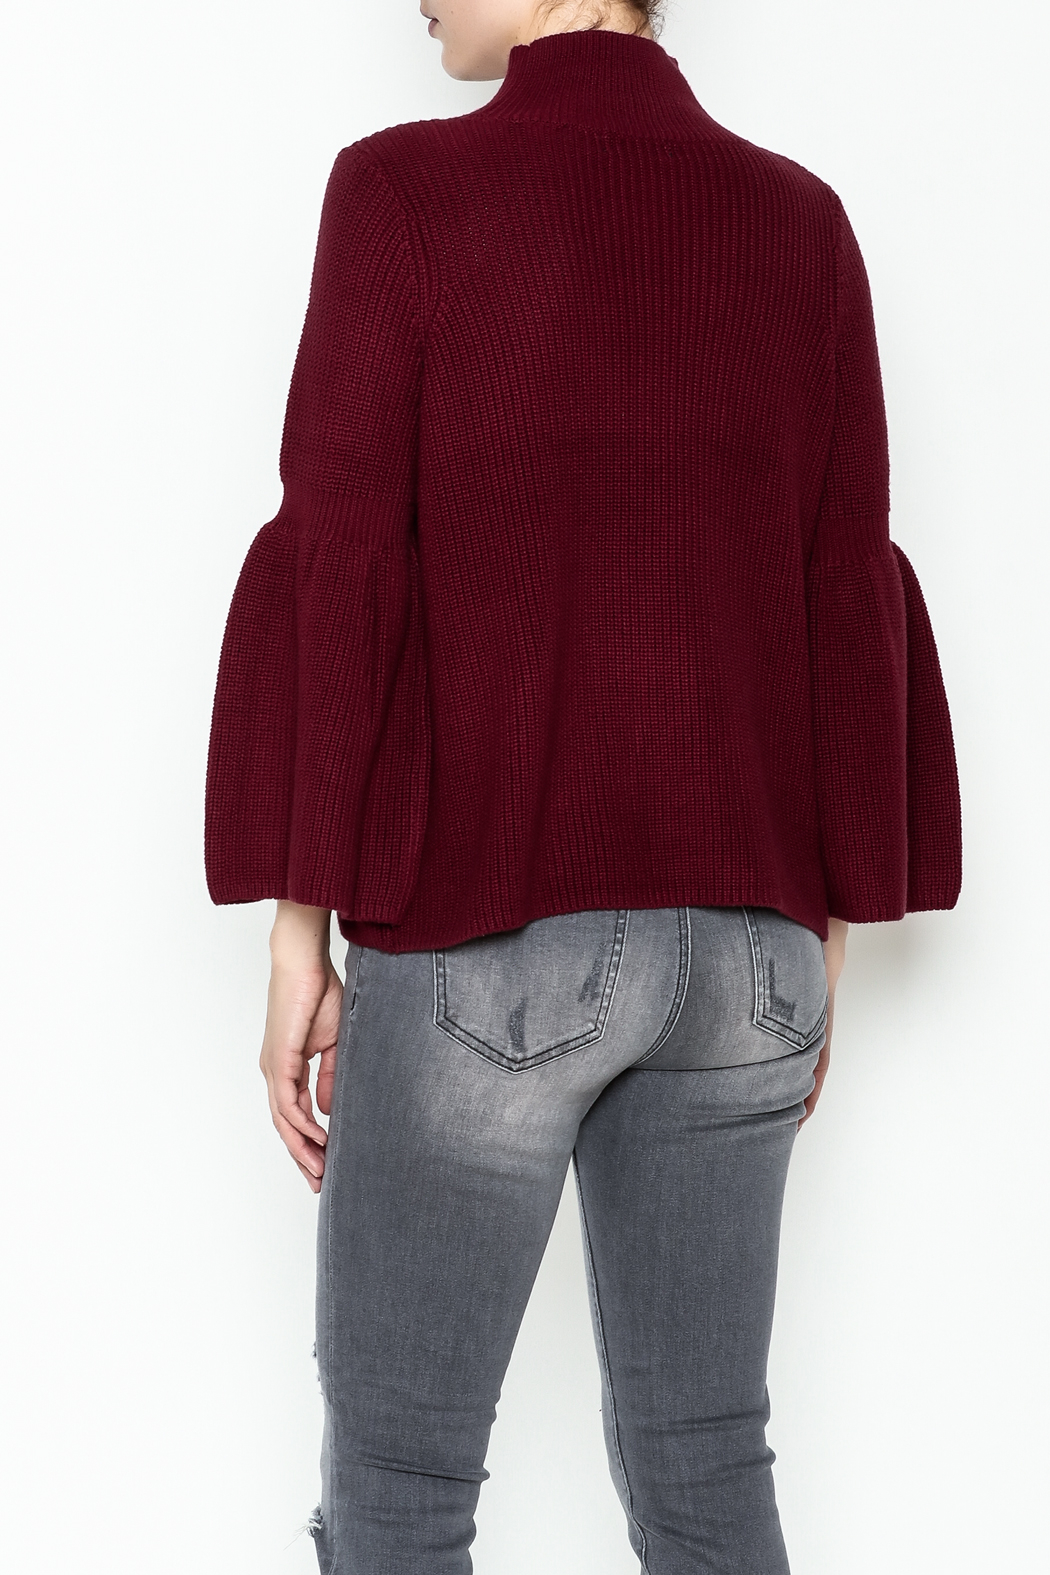 525 Crop Pullover Shaker Top - Back Cropped Image